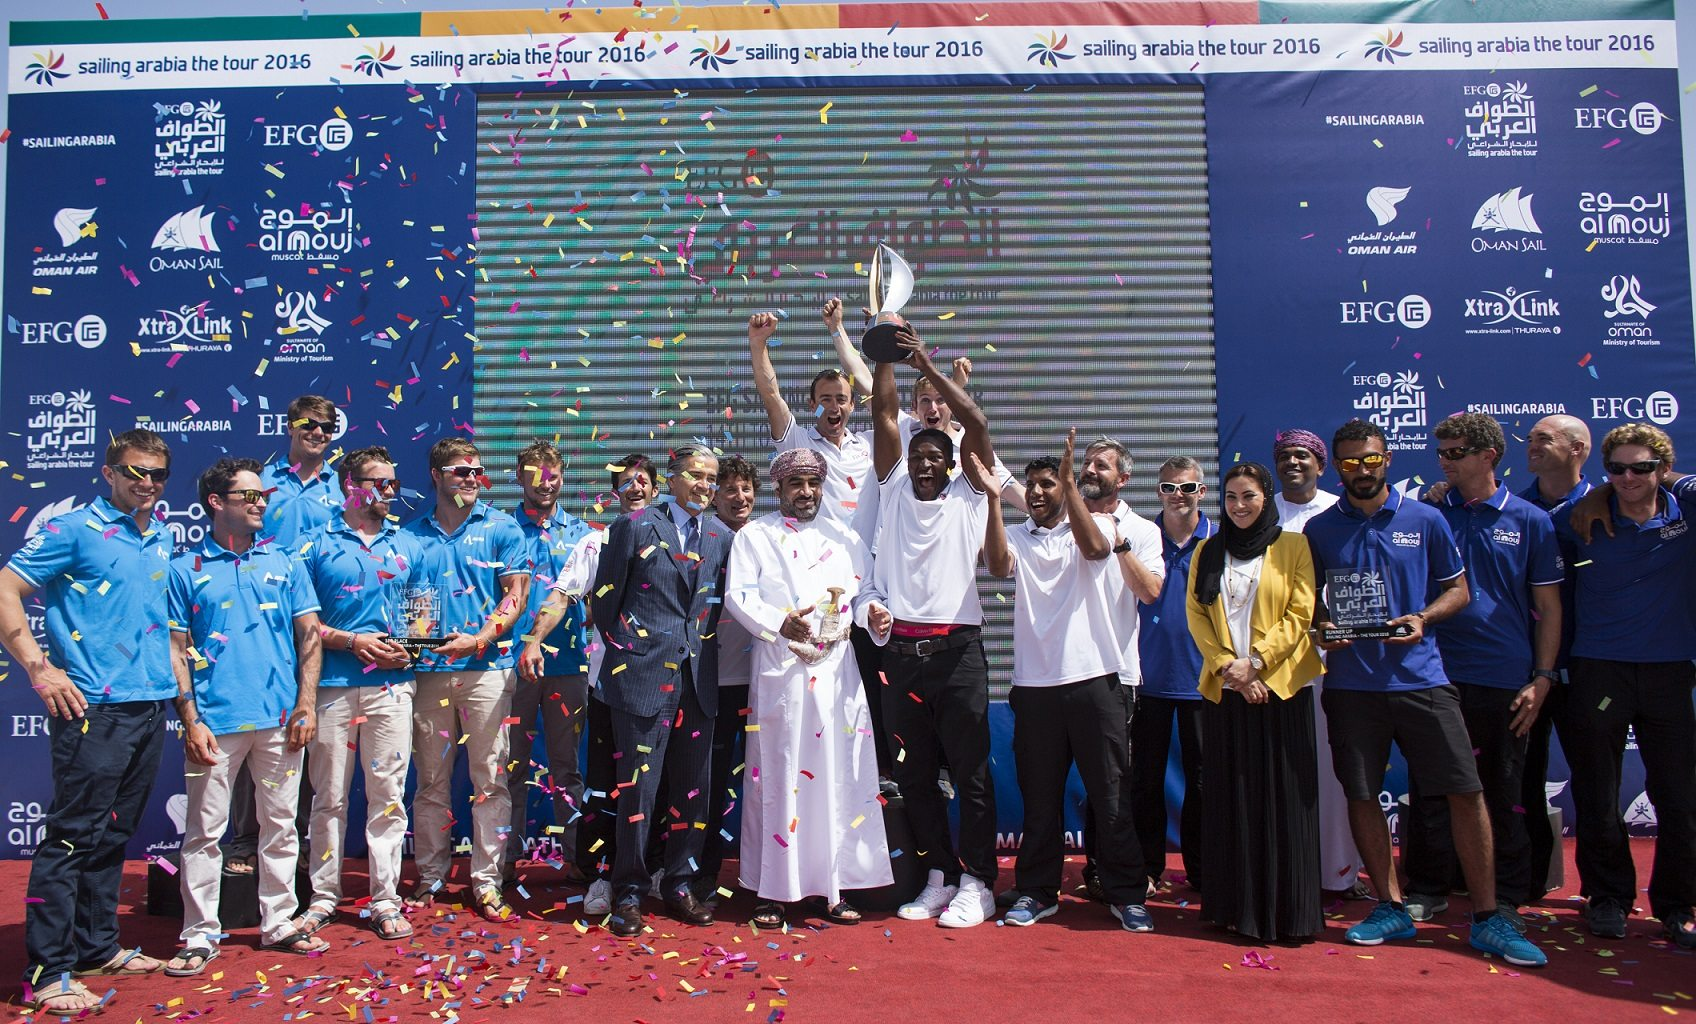 EFG Sailing Arabia - The Tour 2016 Pictures of there closing ceremony today at the Oman Sail HQ. Overall position for the race 1st EFG Bank Monaco skippered by Sidney Gavignet (FRA), 2nd Al Mouj, Muscat skippered by Nico Lunven (FRA), 3rd Team Averda skippered by Marcel Herrera (GBR)